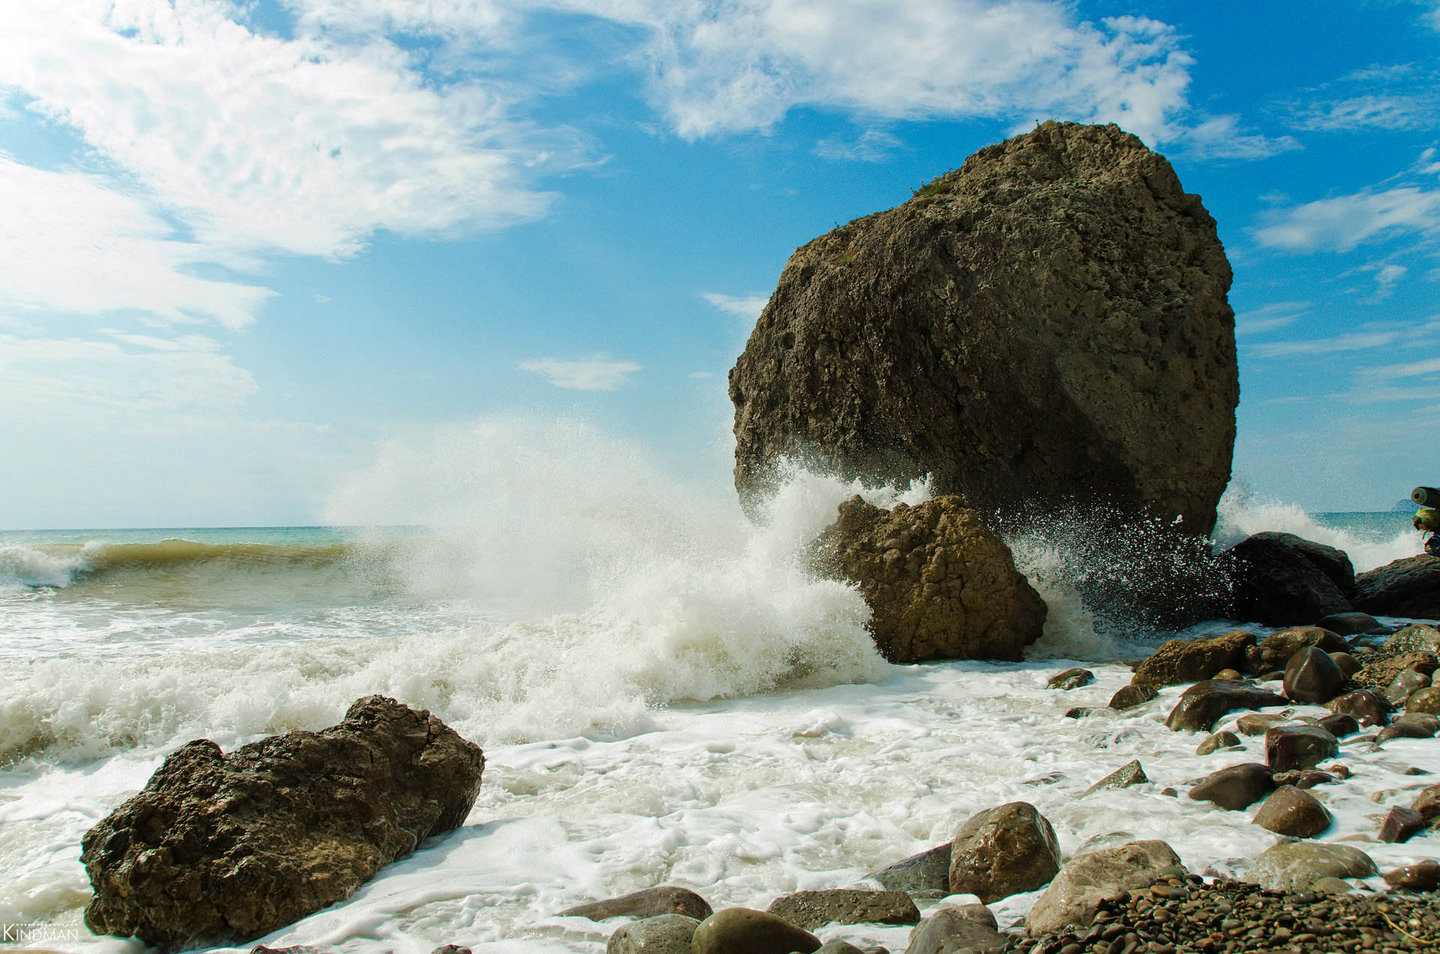 Light storm, Crimea | Crimea, sea, storm, wave, stone, foam, pebble, sky, water, resort